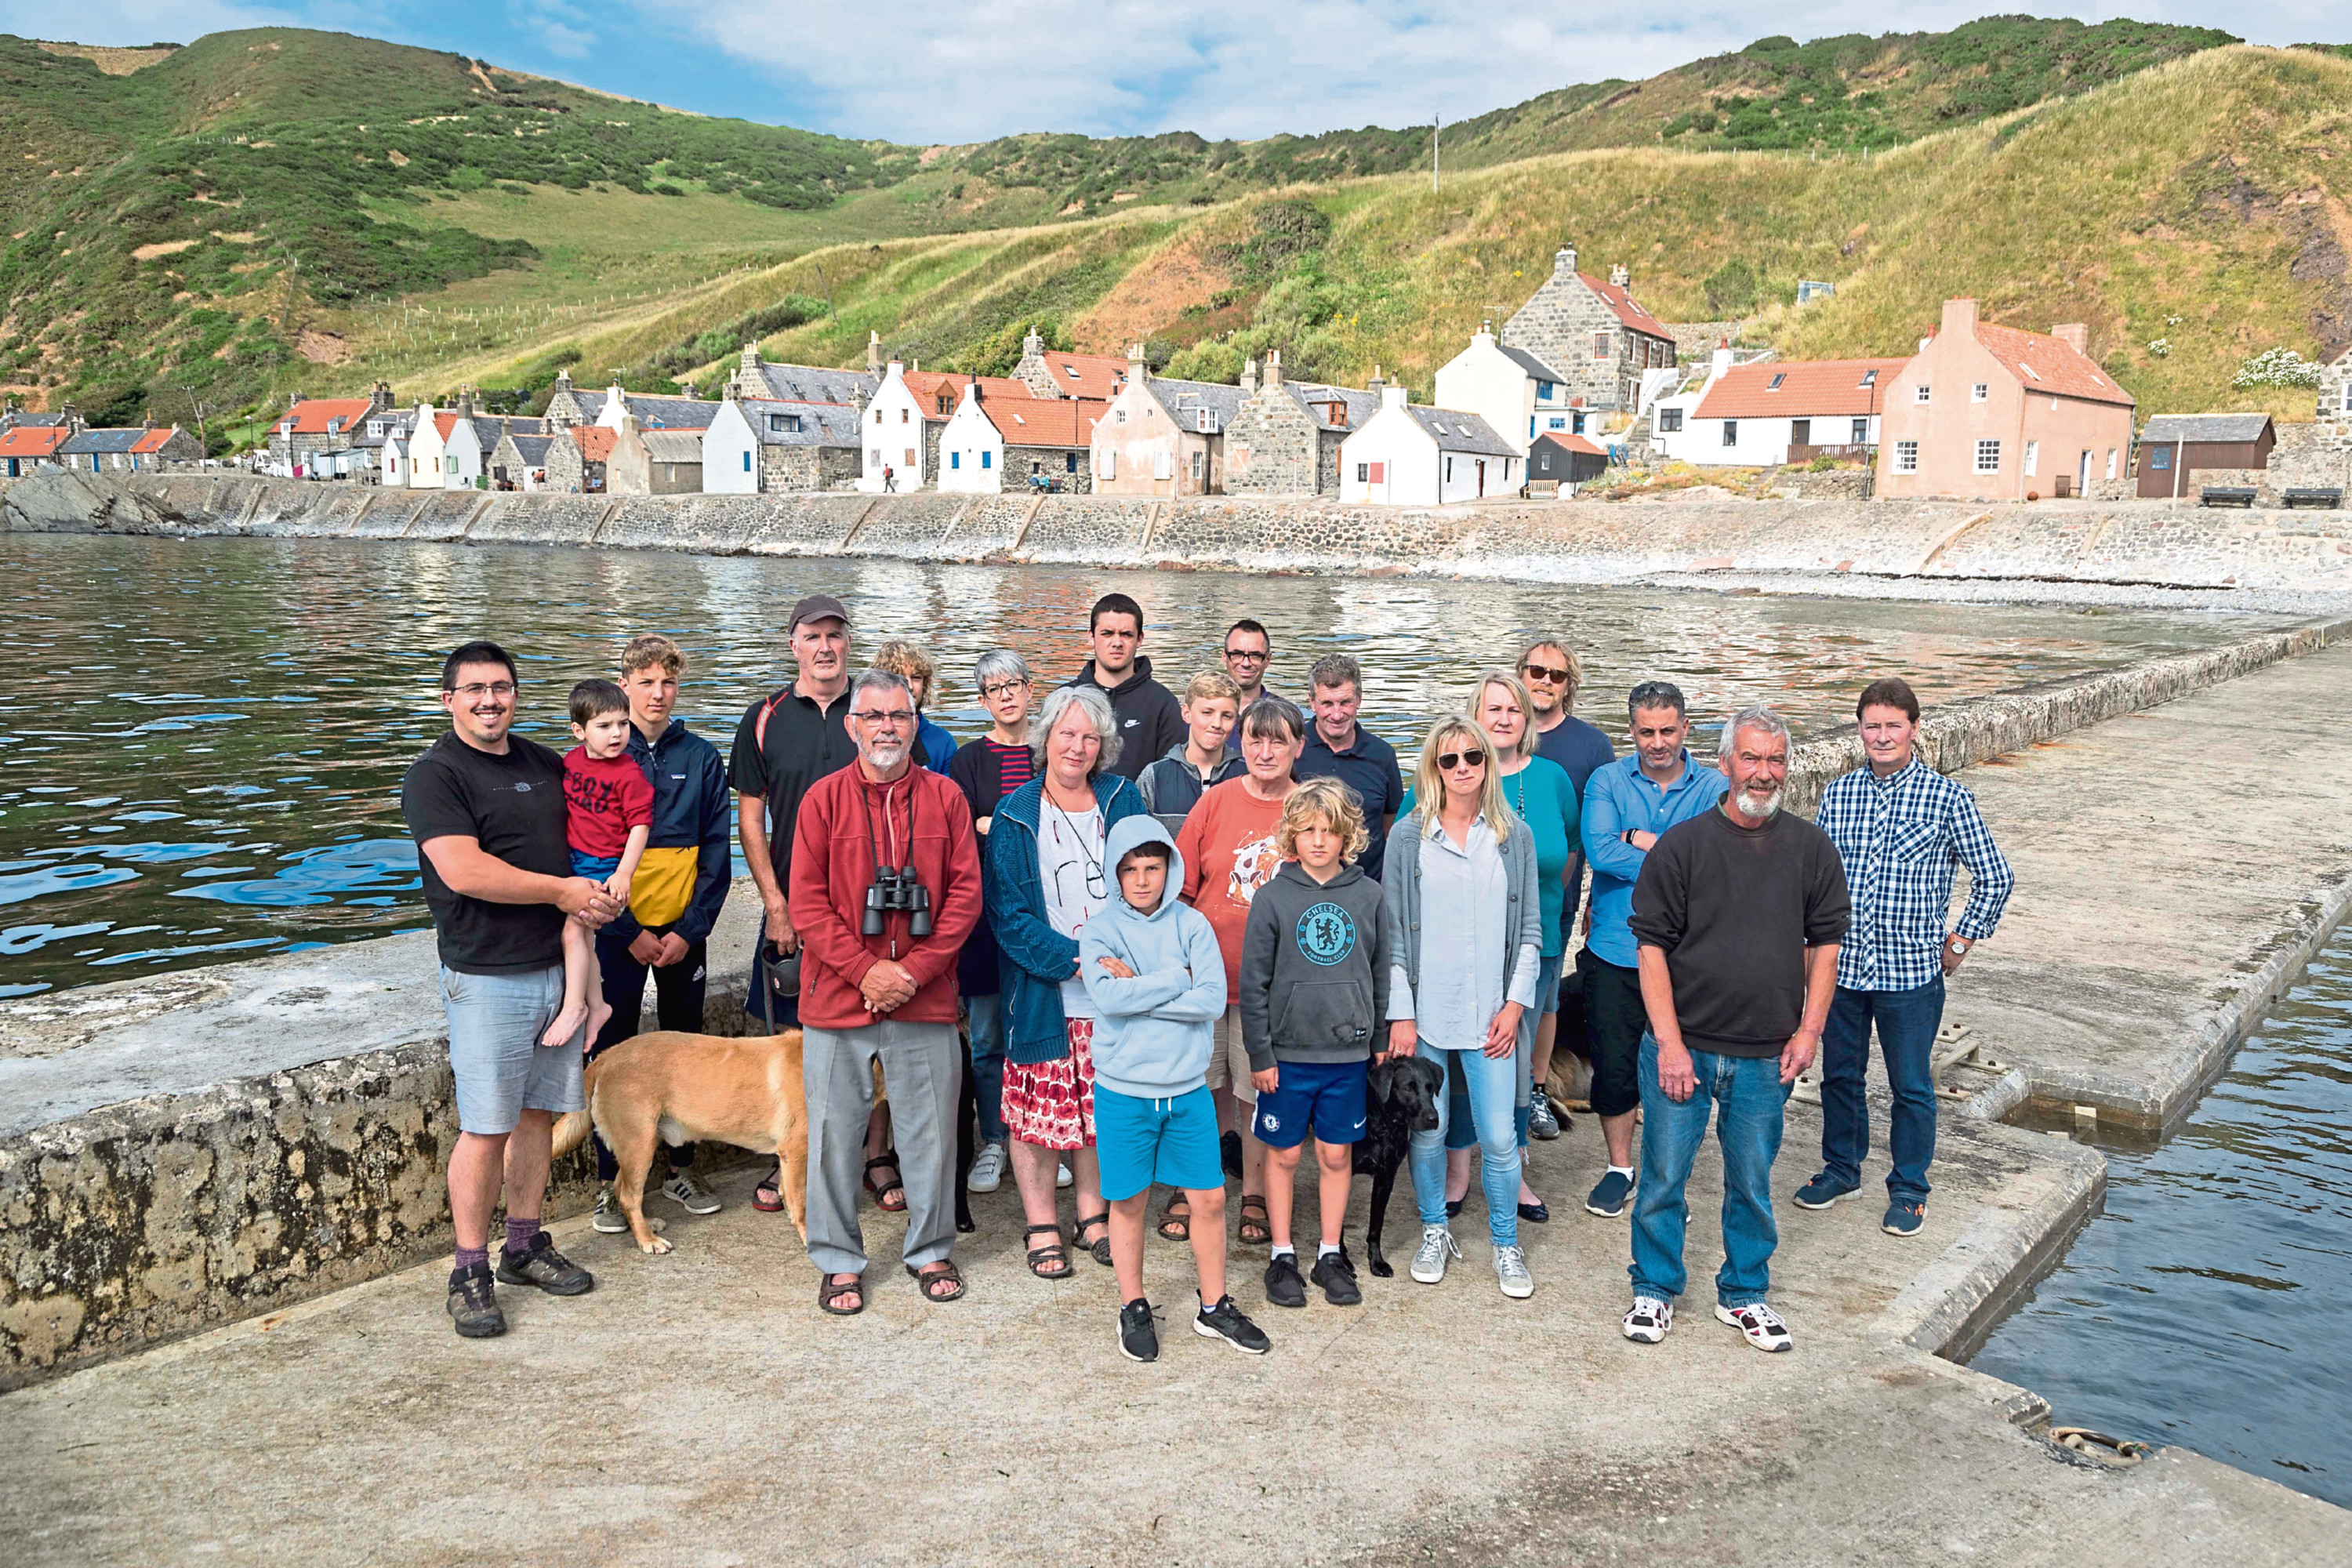 FEATURE ON NORTH EAST VILLAGE THAT HAS BEEN CUT OFF BY ROAD FOR THE LAST 10 MONTHS PIC OF CROVIE VILLAGERS WHO AHVE BEEN LEFT FRUSTRATED AFTER ABERDEENSHIRE COUNCIL CLOSED THE ROAD INTO THE VILLAGE AFTER CRACKS APPEARED PIC DEREK IRONSIDE / NEWSLINE MEDIA